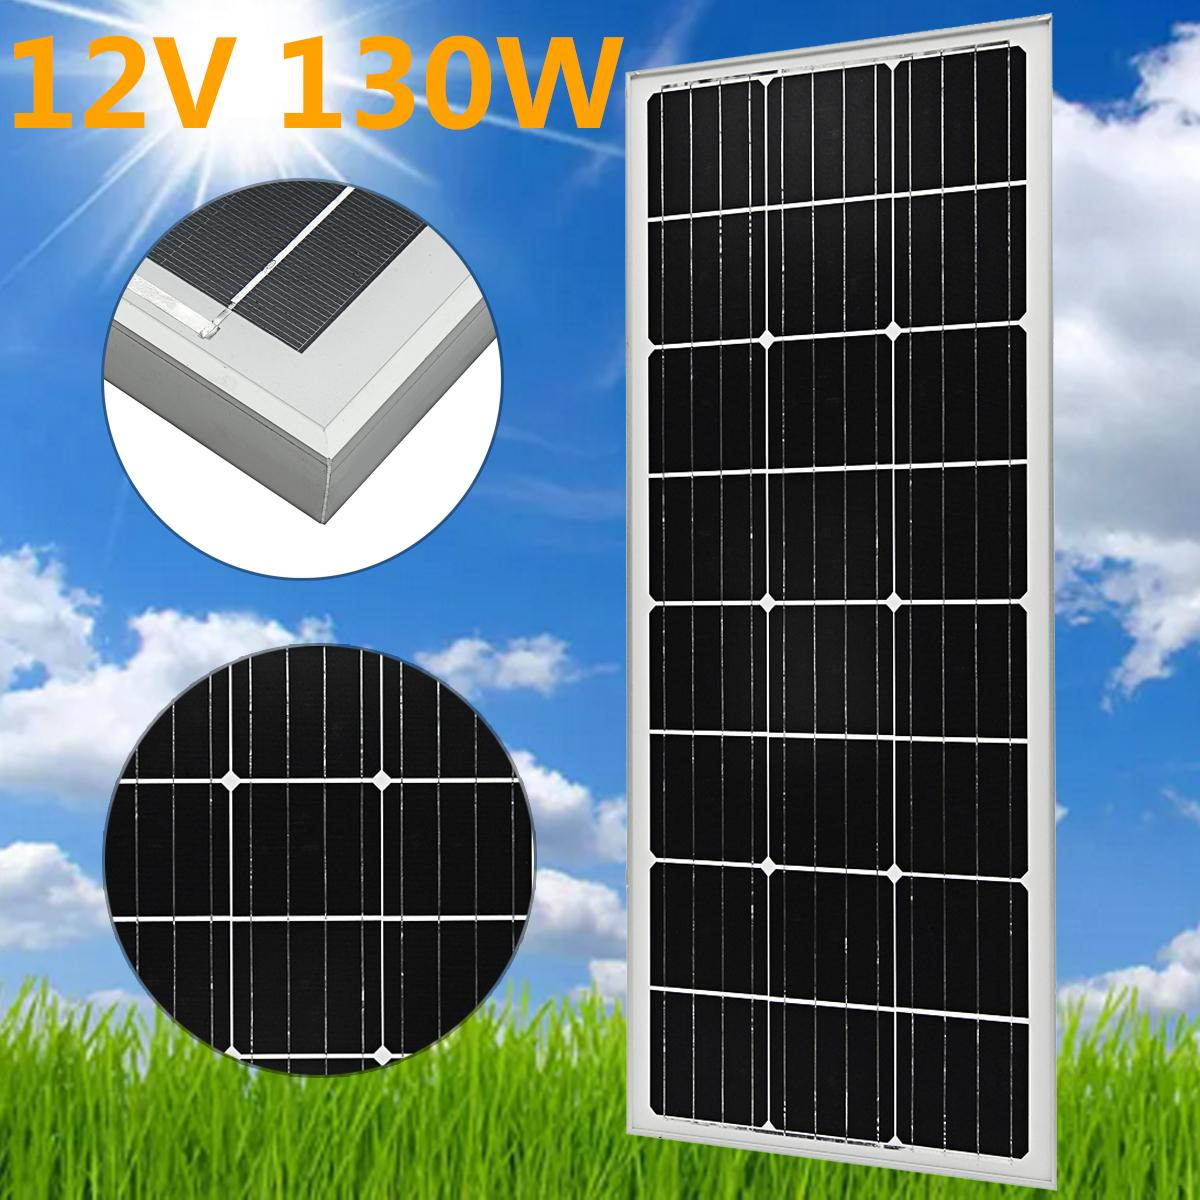 LEORY 18V 130W High Conversion Efficiency Monocrystalline Silicon Solar Panel With Glass Bearing Plate 35w 18v polycrystalline solar panel module with special technology high efficiency long lifecycle fend against snowstorm